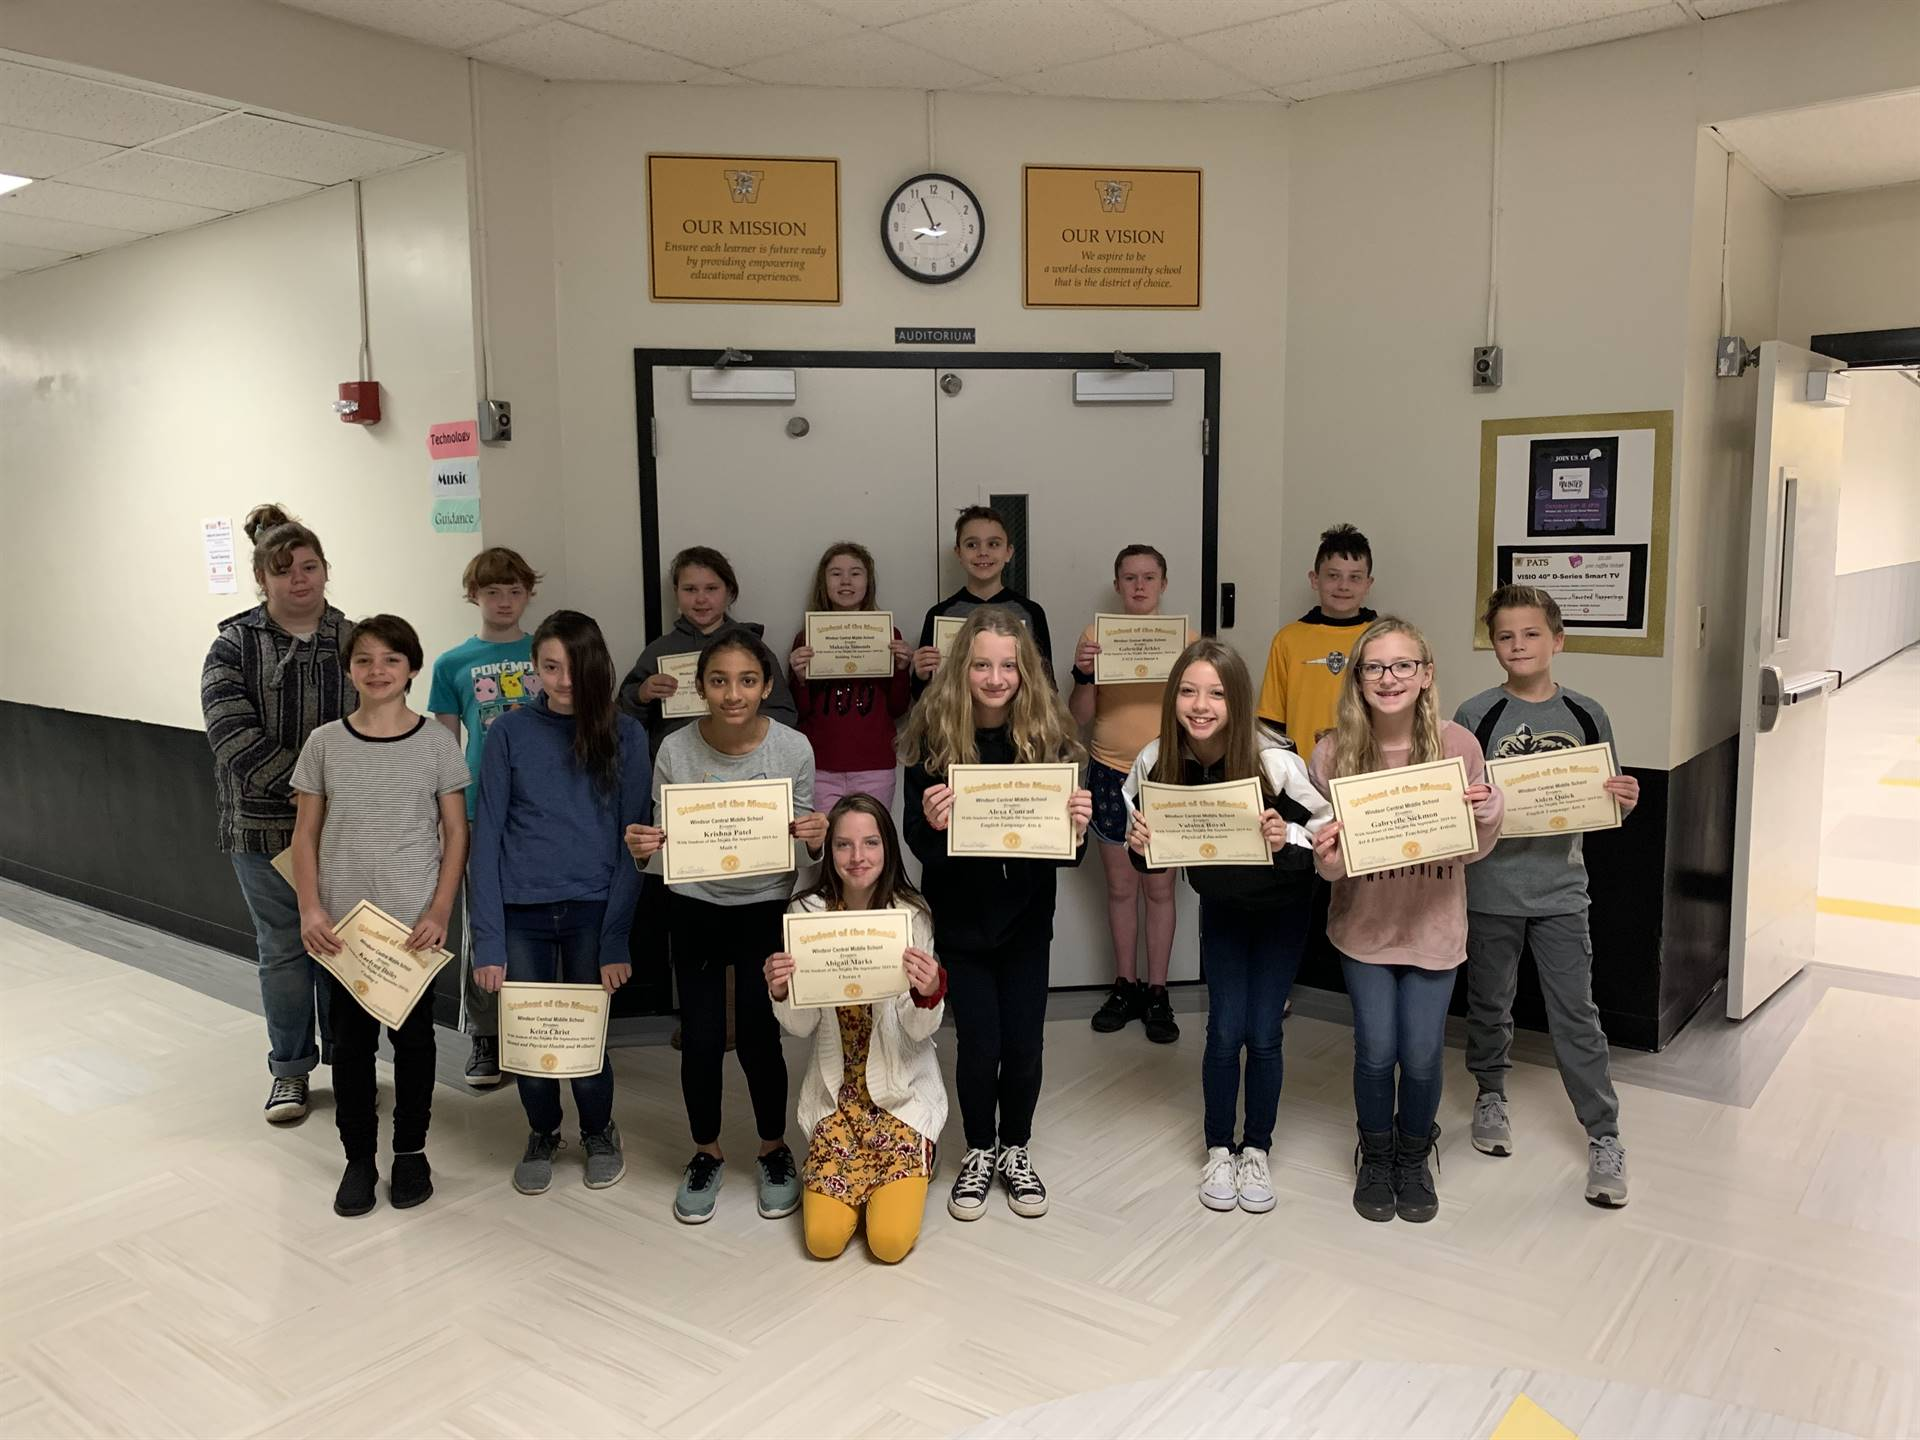 15 6th graders holding certificates in a hallway